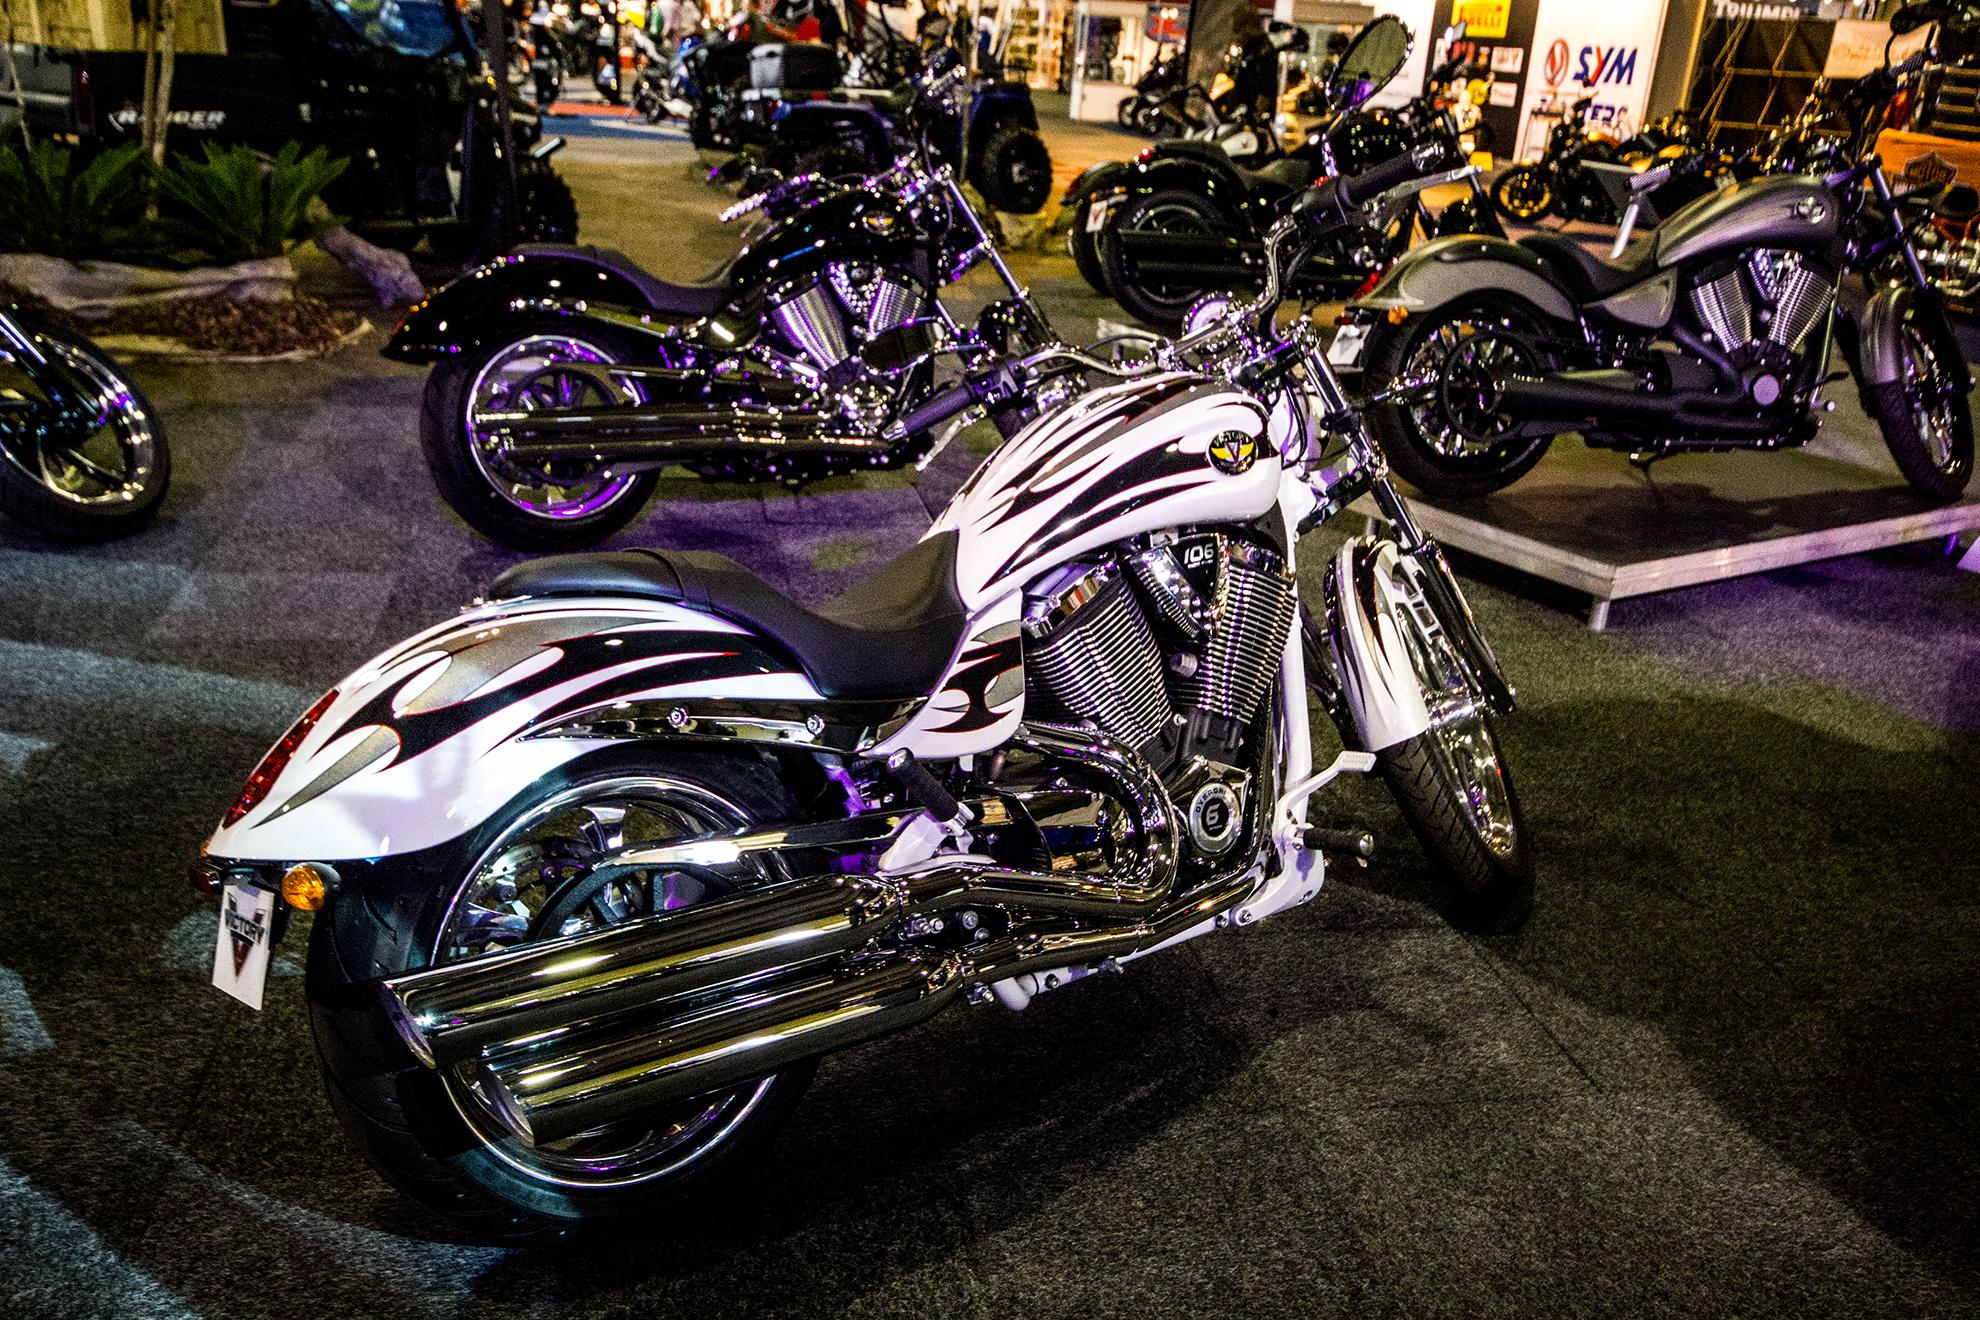 Victory-Johannesburg-Motorcycle-Show-2012-13